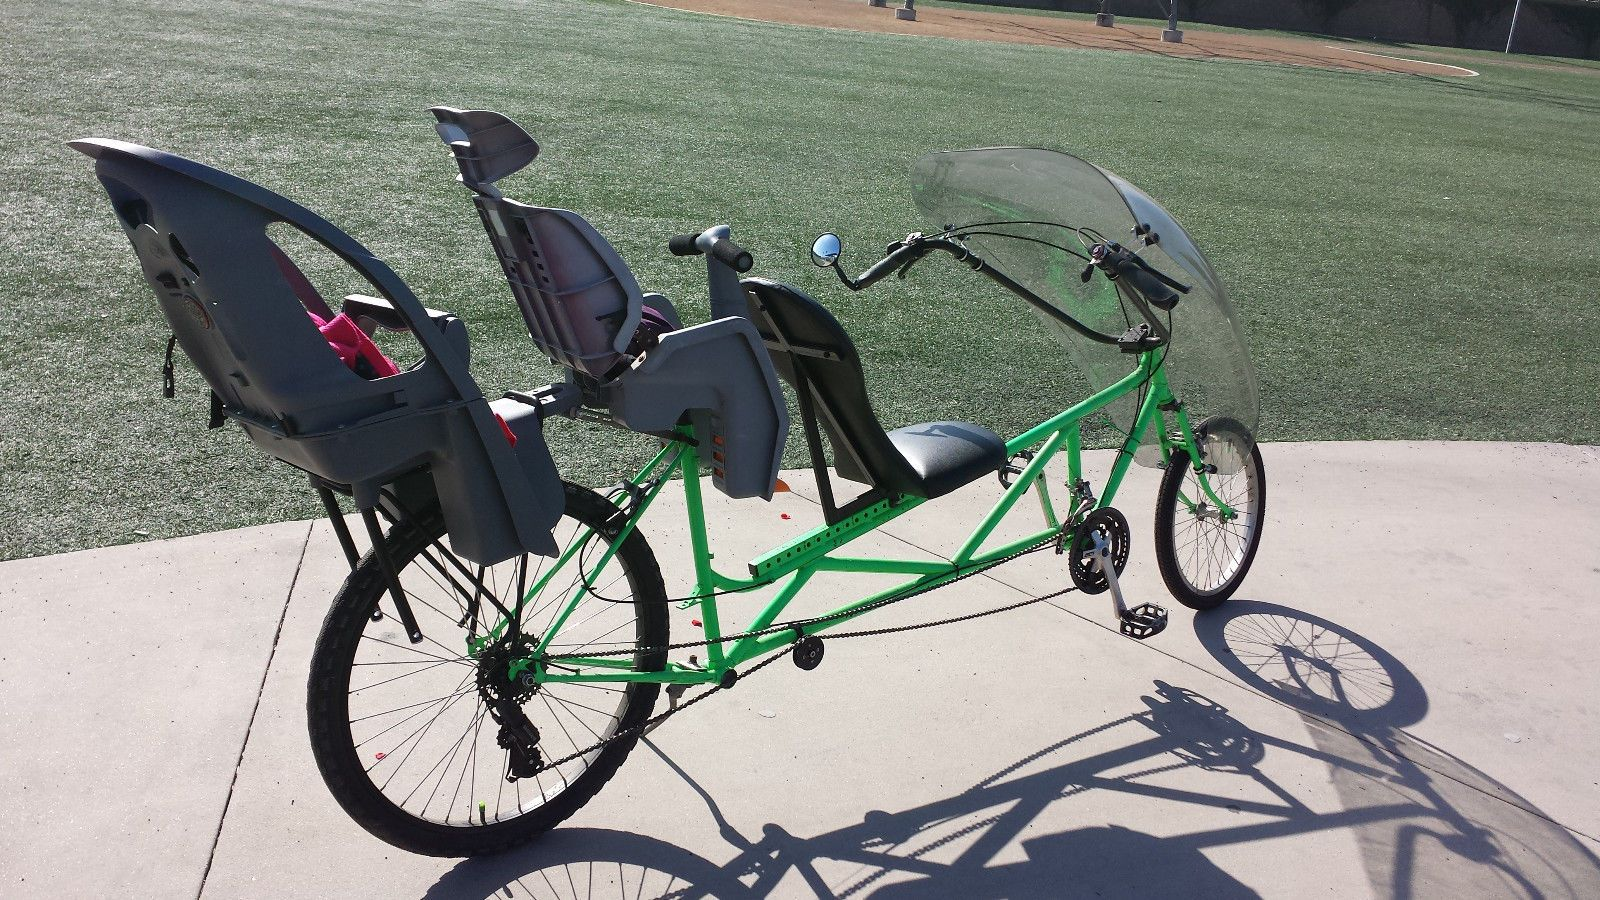 Tour Easy Recumbent Bike One Of A Kind Custom 2 Child Seats Free Delivery In Oc Ebay Bike Recumbent Bicycle Kids Seating